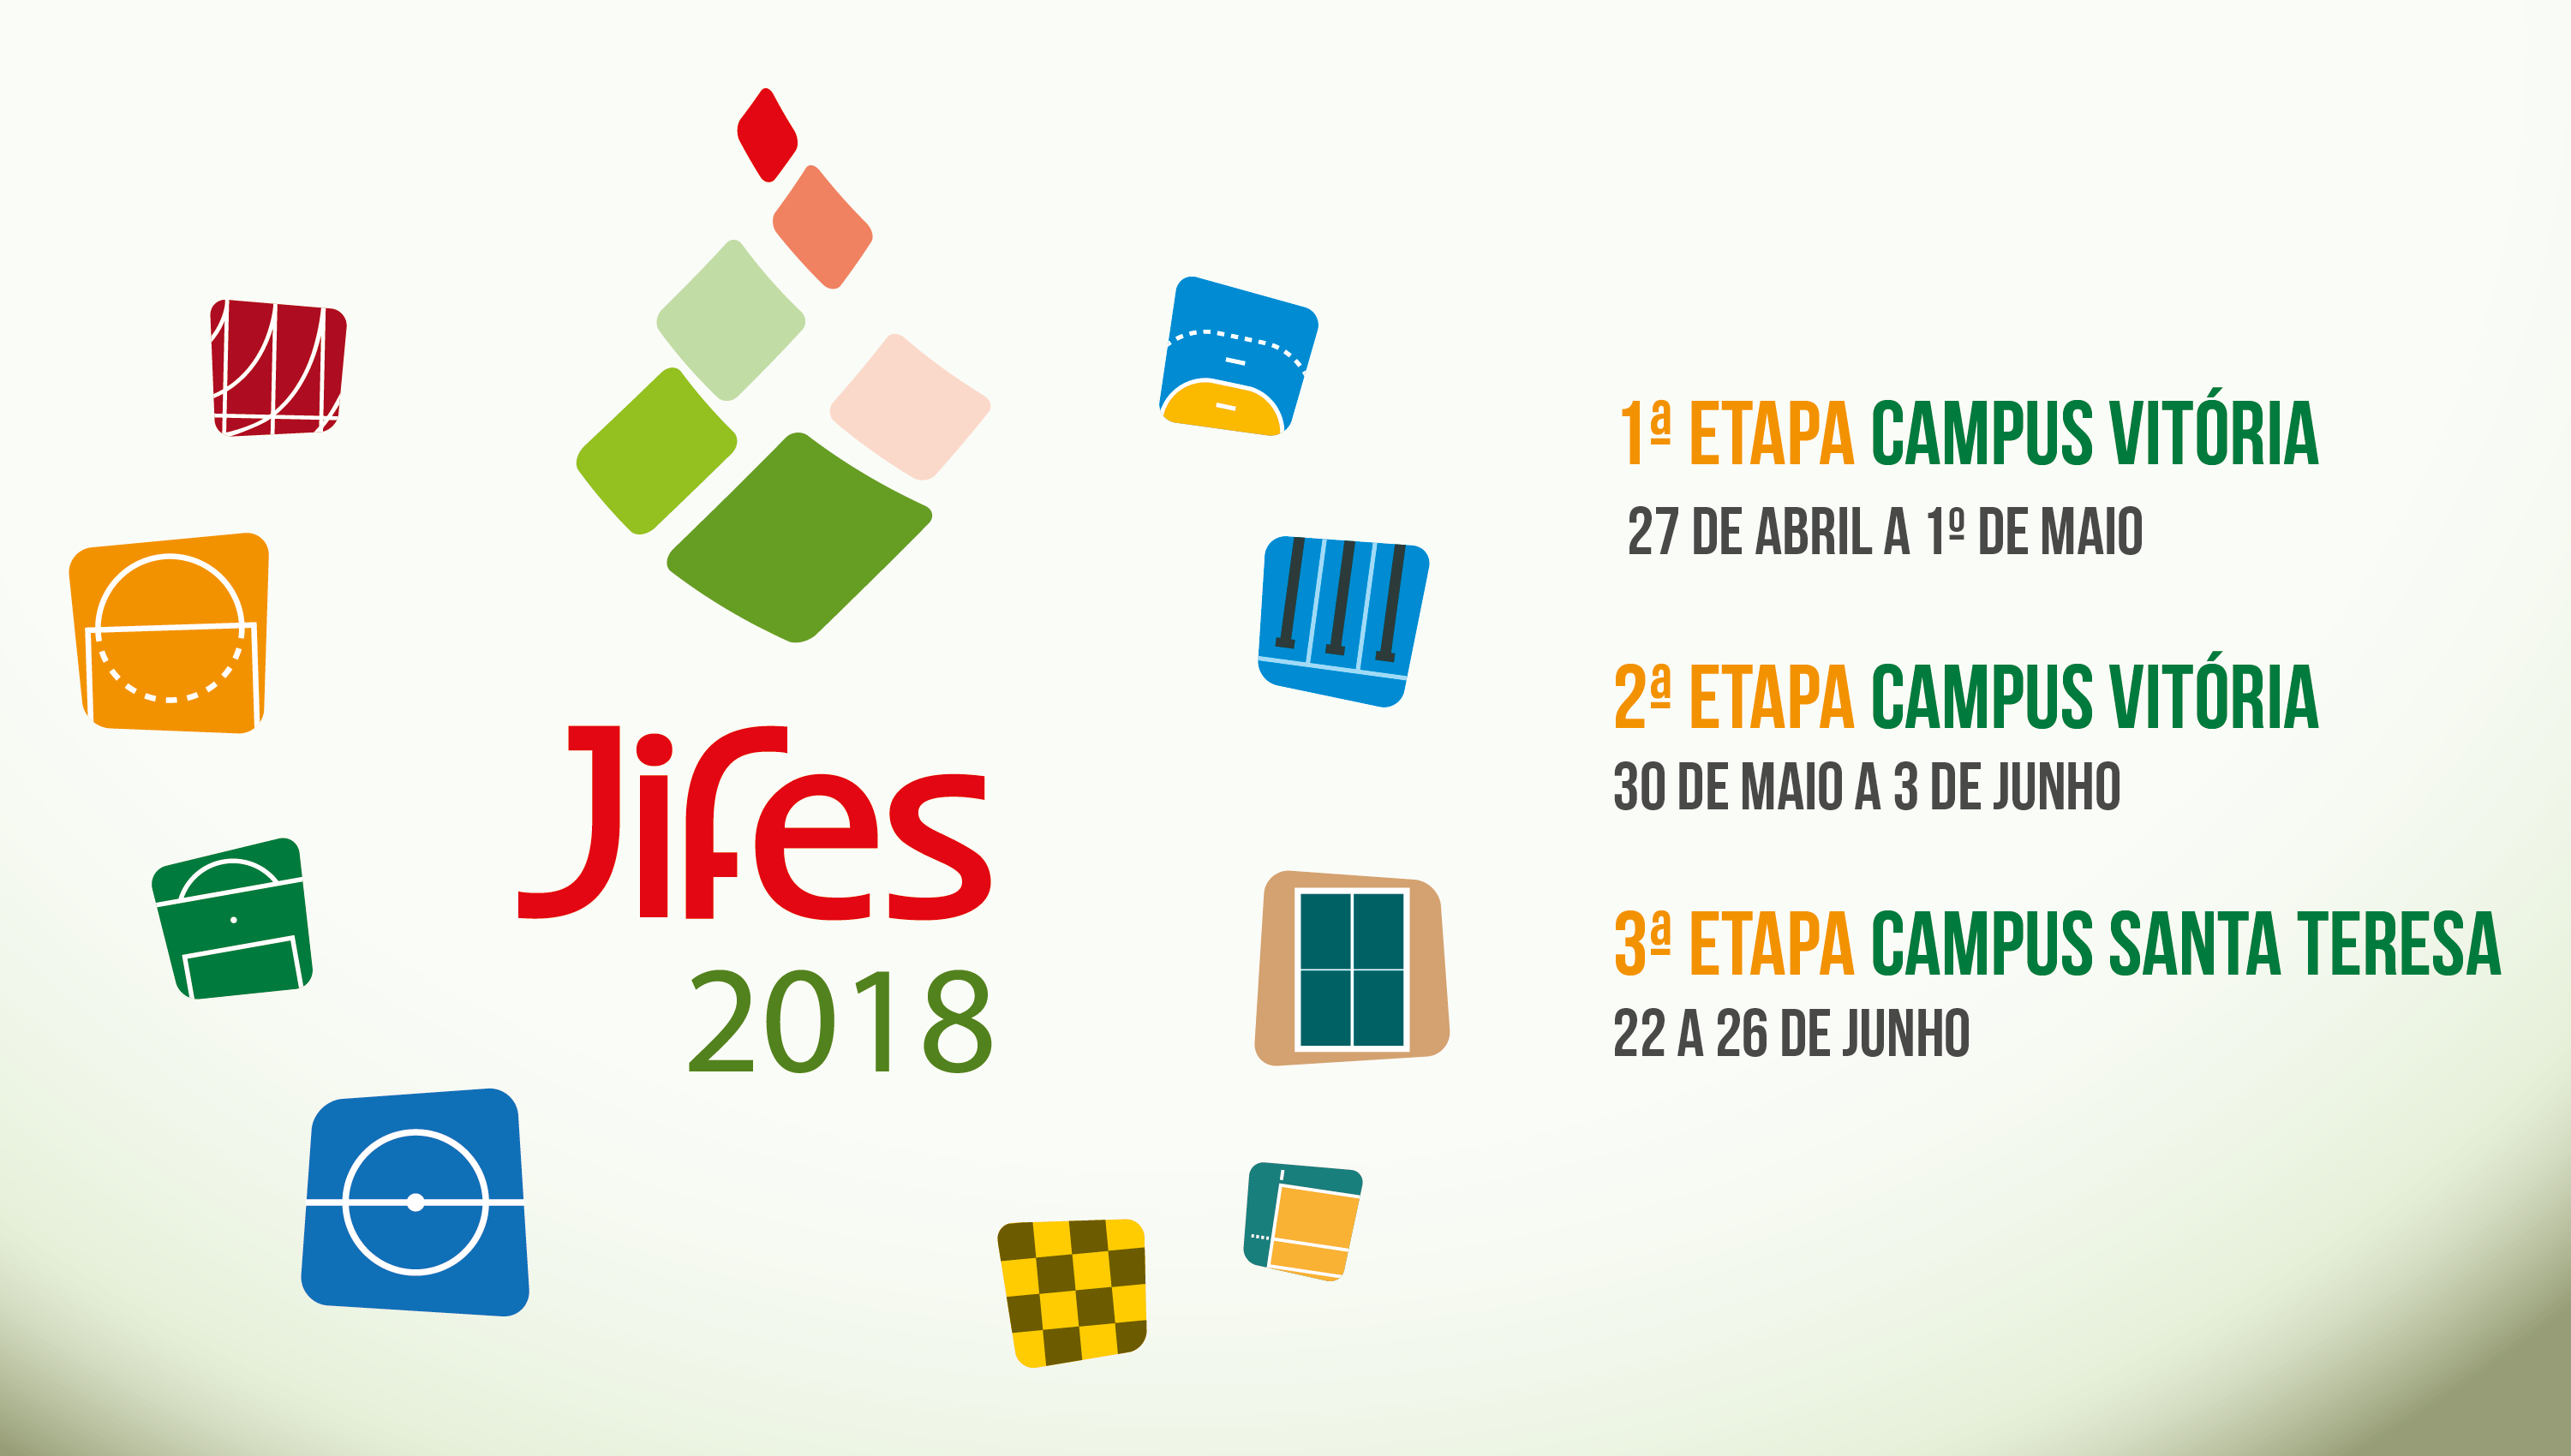 Disputas do Jifes 2018 começam no dia 27 de abril